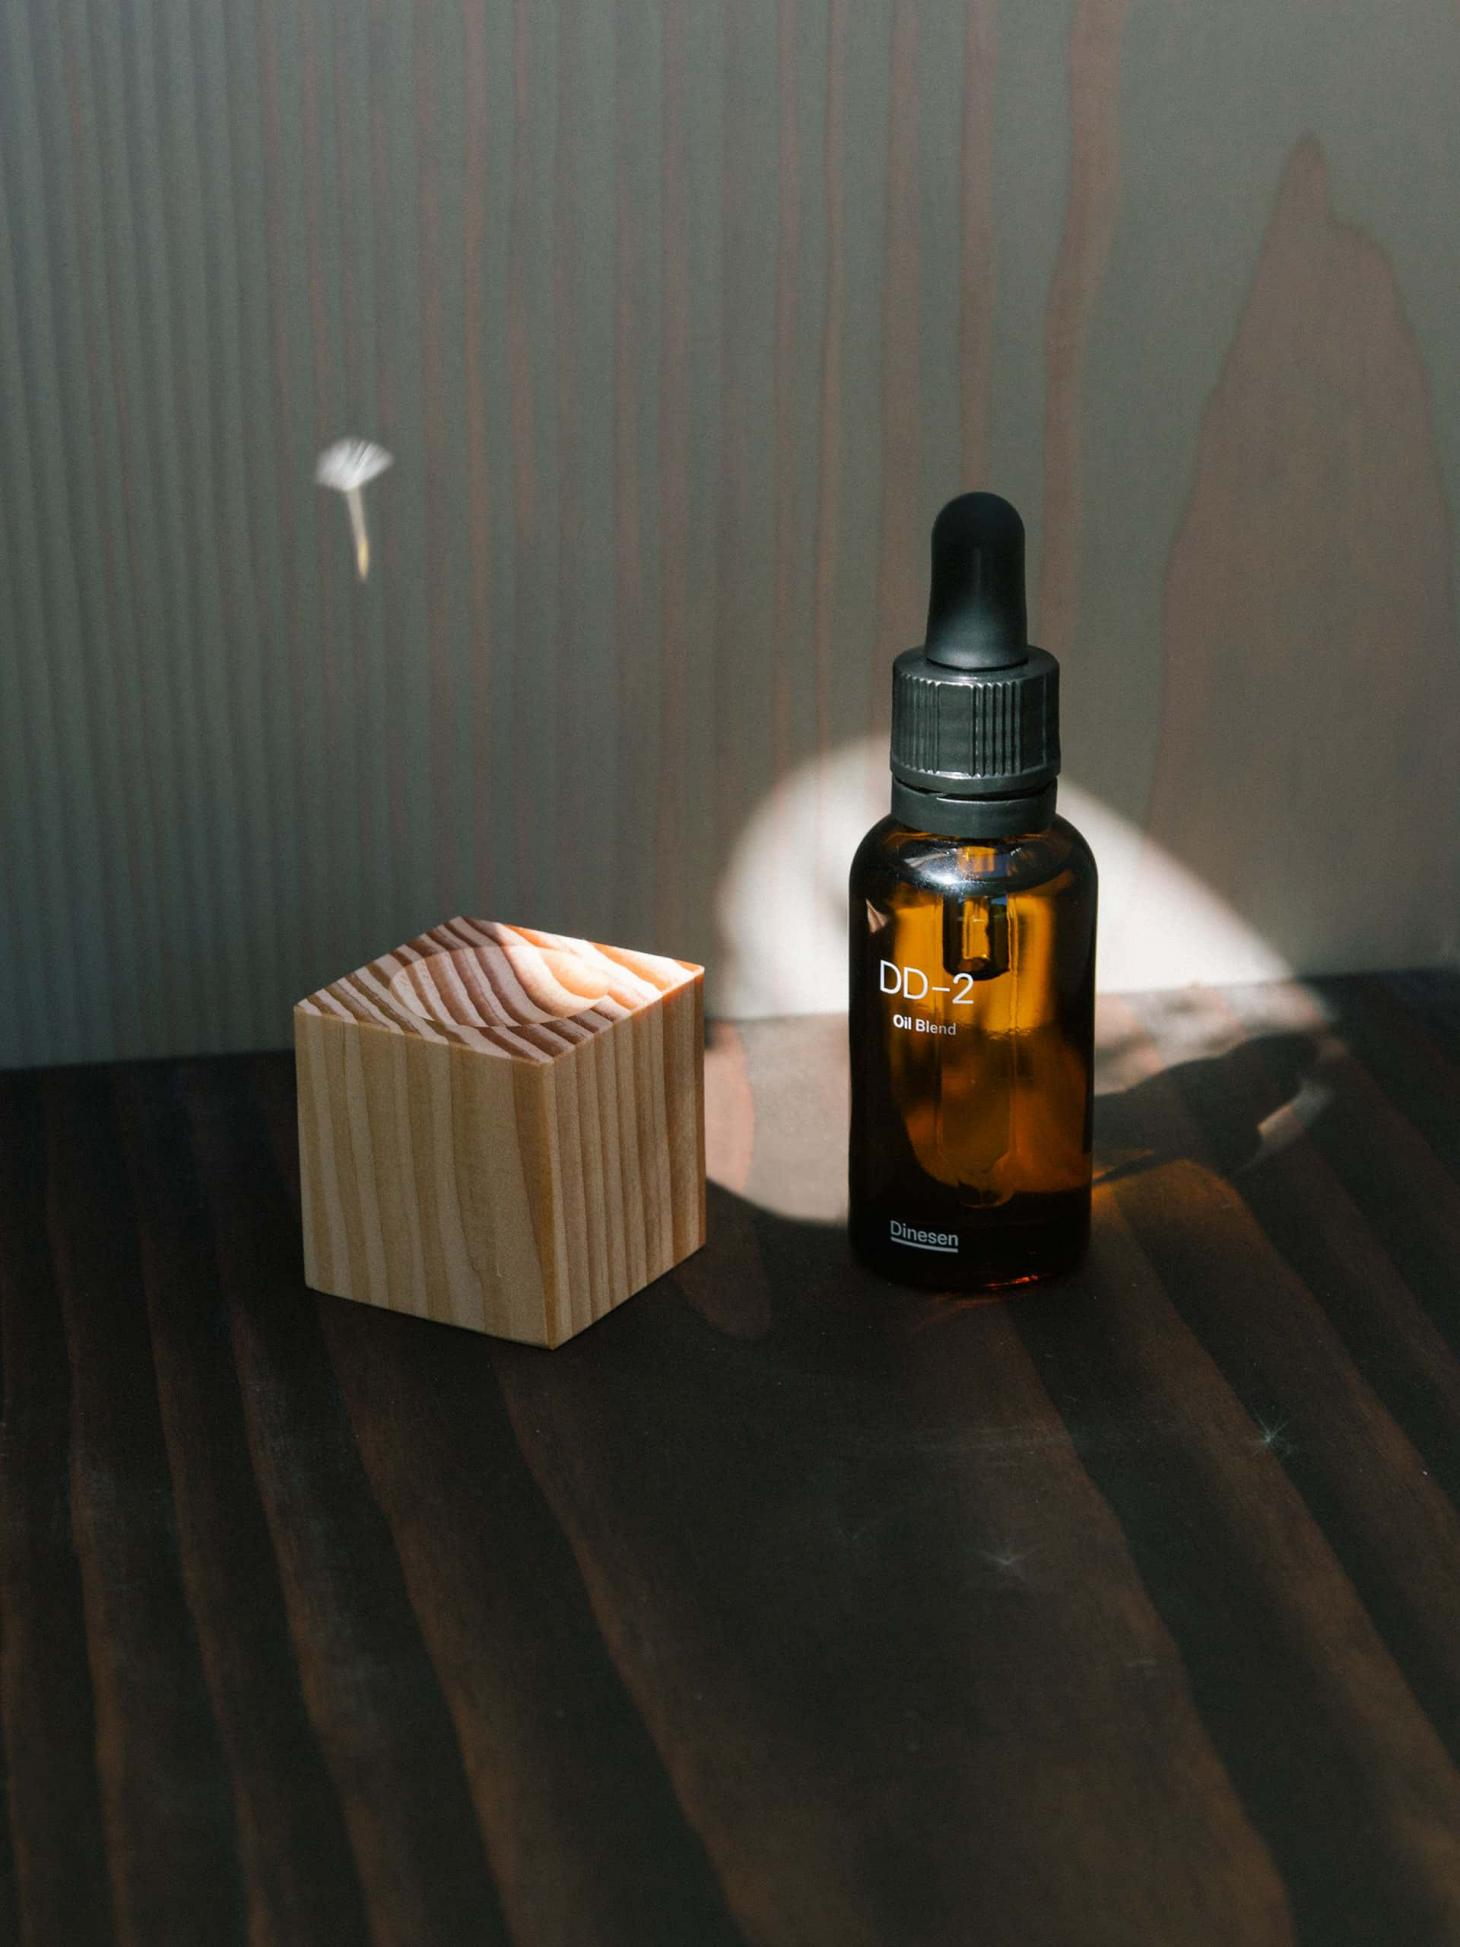 DD-2 tincture against a wooden wall